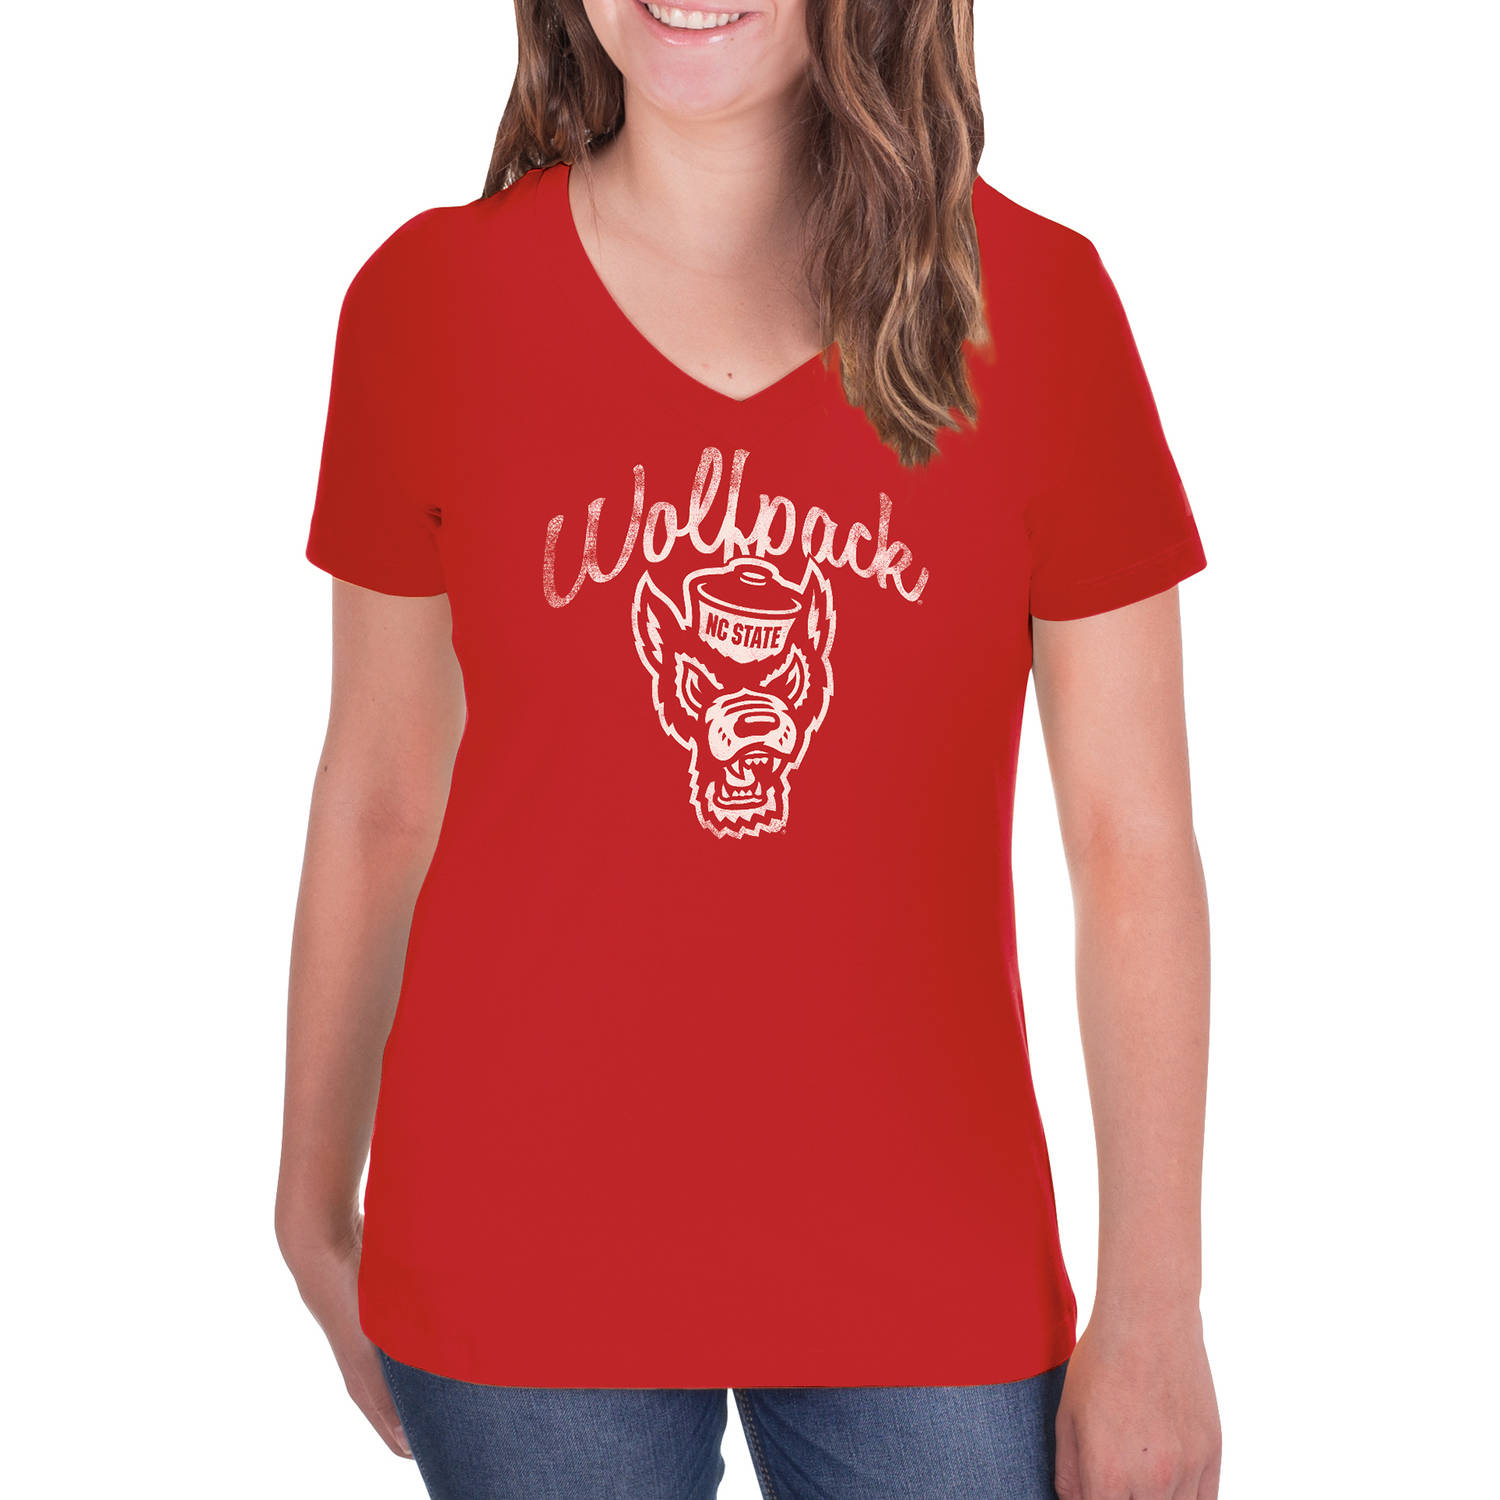 NCAA NC State Wolfpack Women's V-Neck Tunic Cotton Tee Shirt